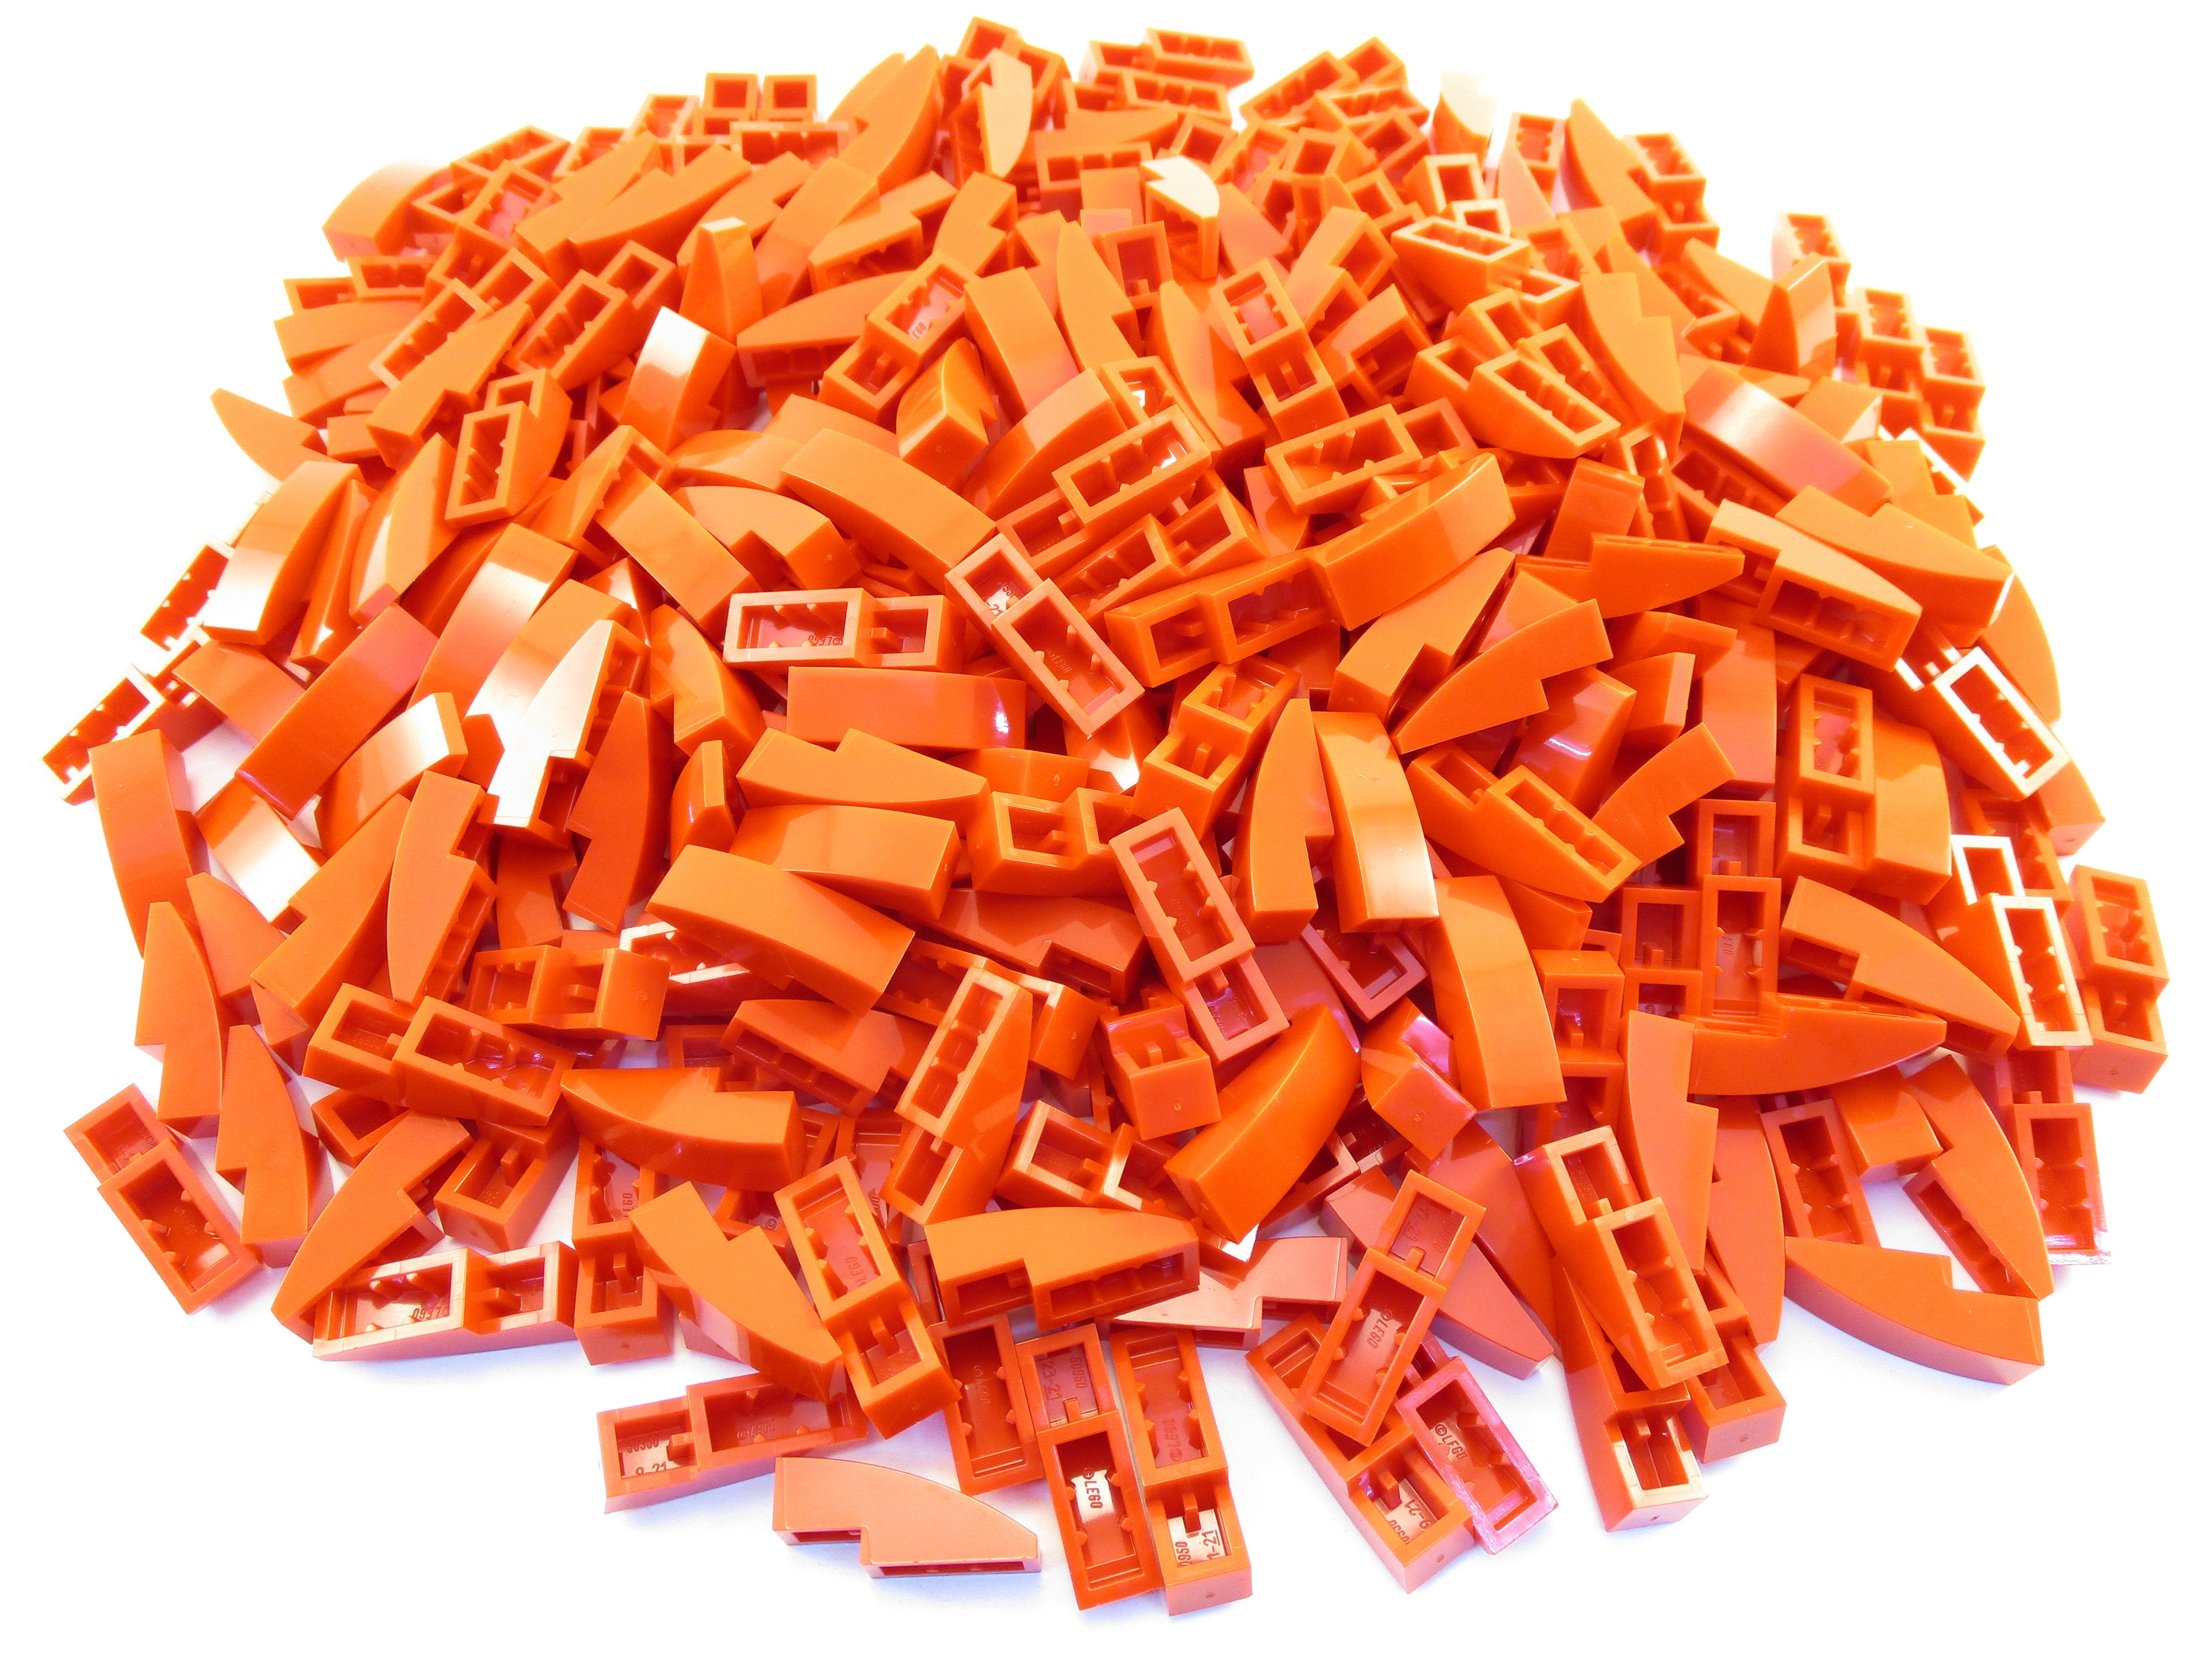 LEGO Red Slope Curved 3x1 No Studs Lot of 100 Parts Pieces 50950